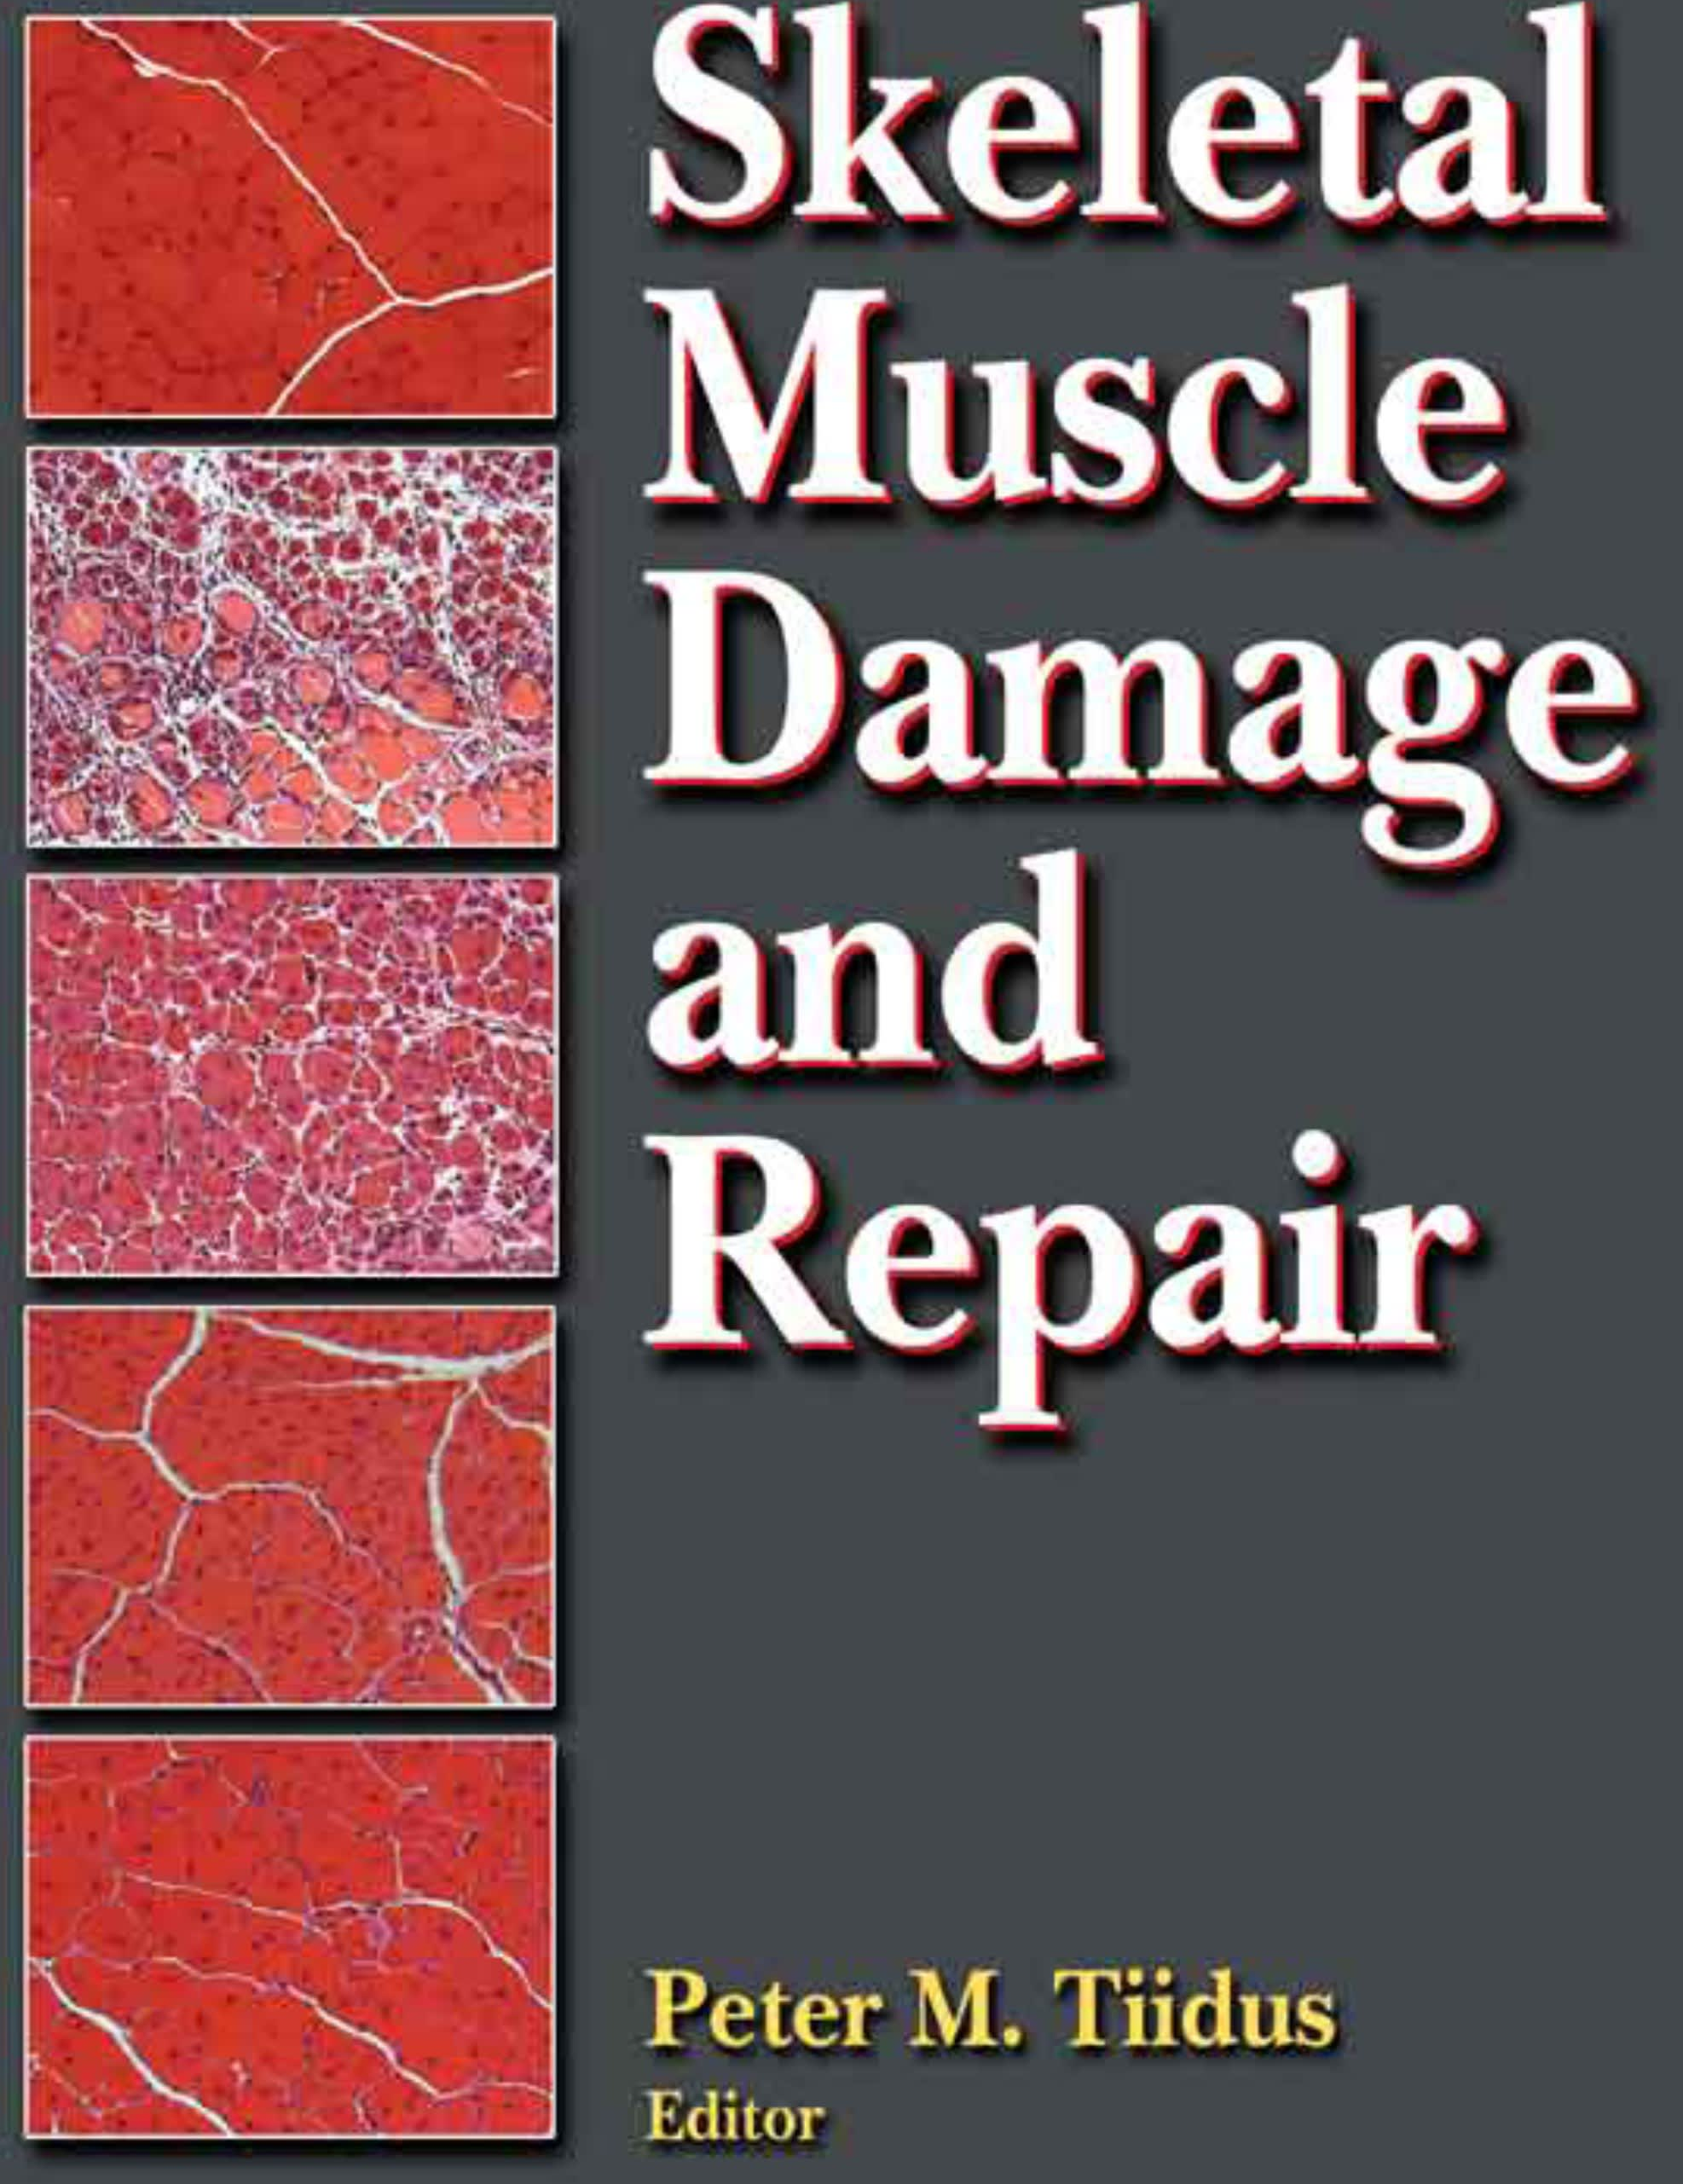 Book cover for Skeletal Muscle Damage and Repair